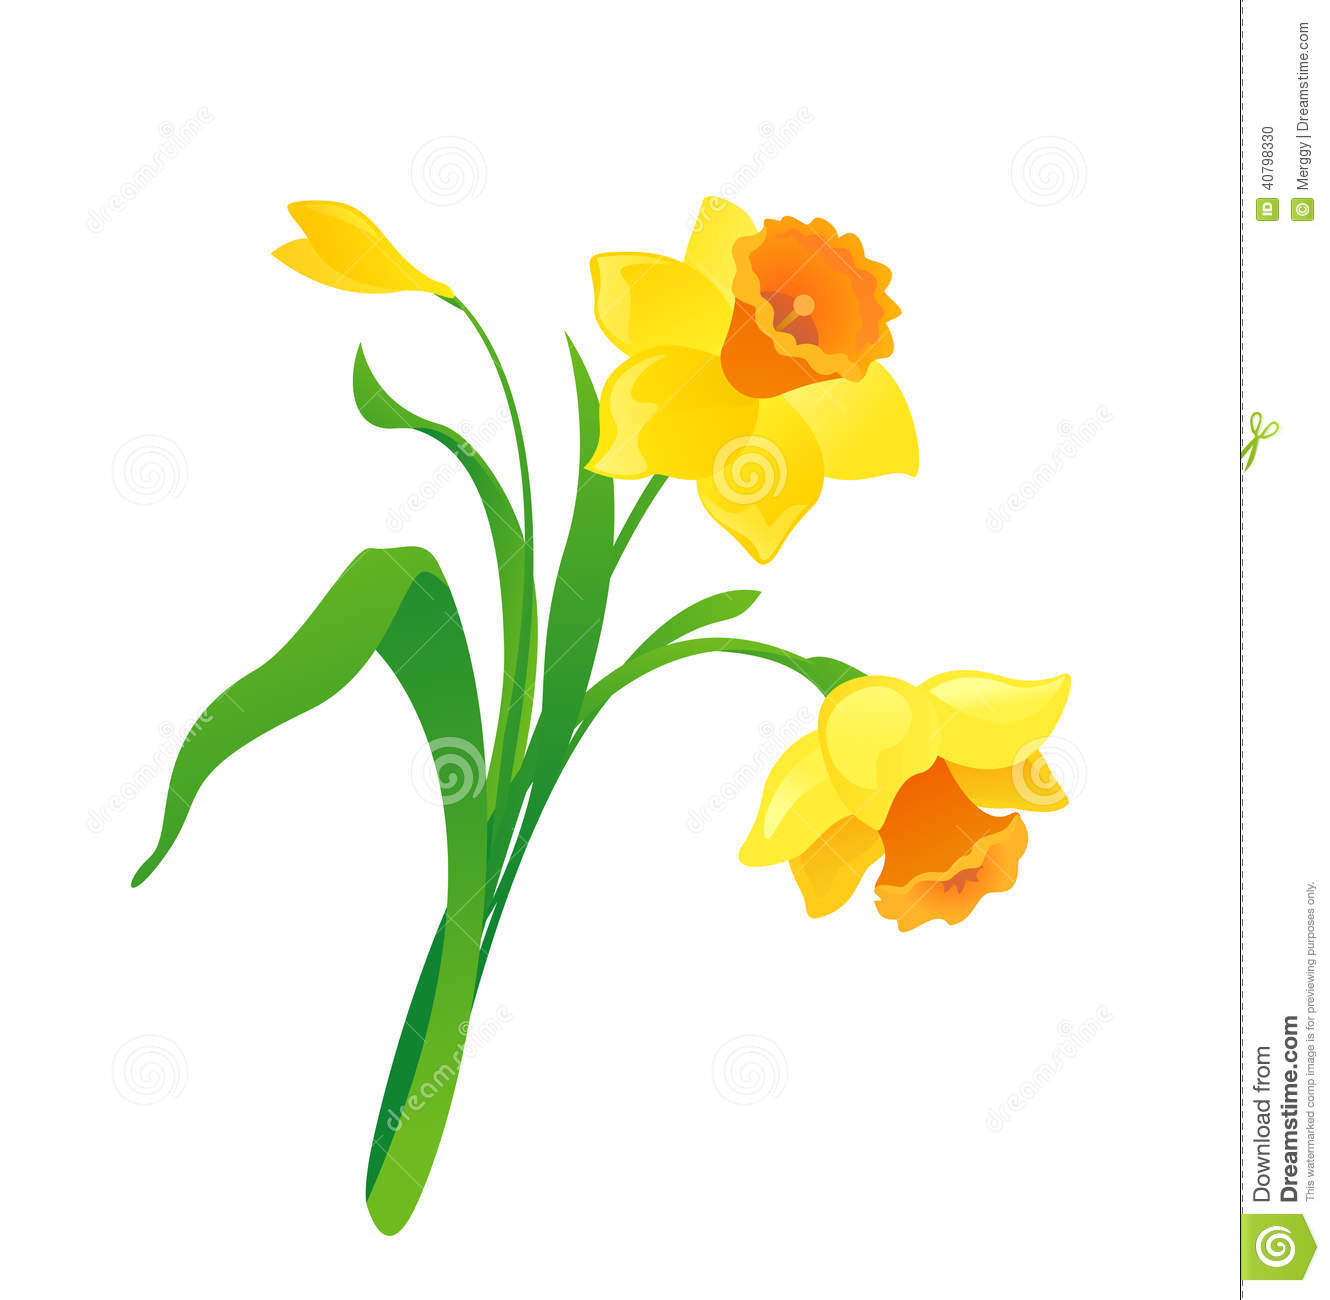 Cartoon Daffodil Stock Vector - Image: 40798330